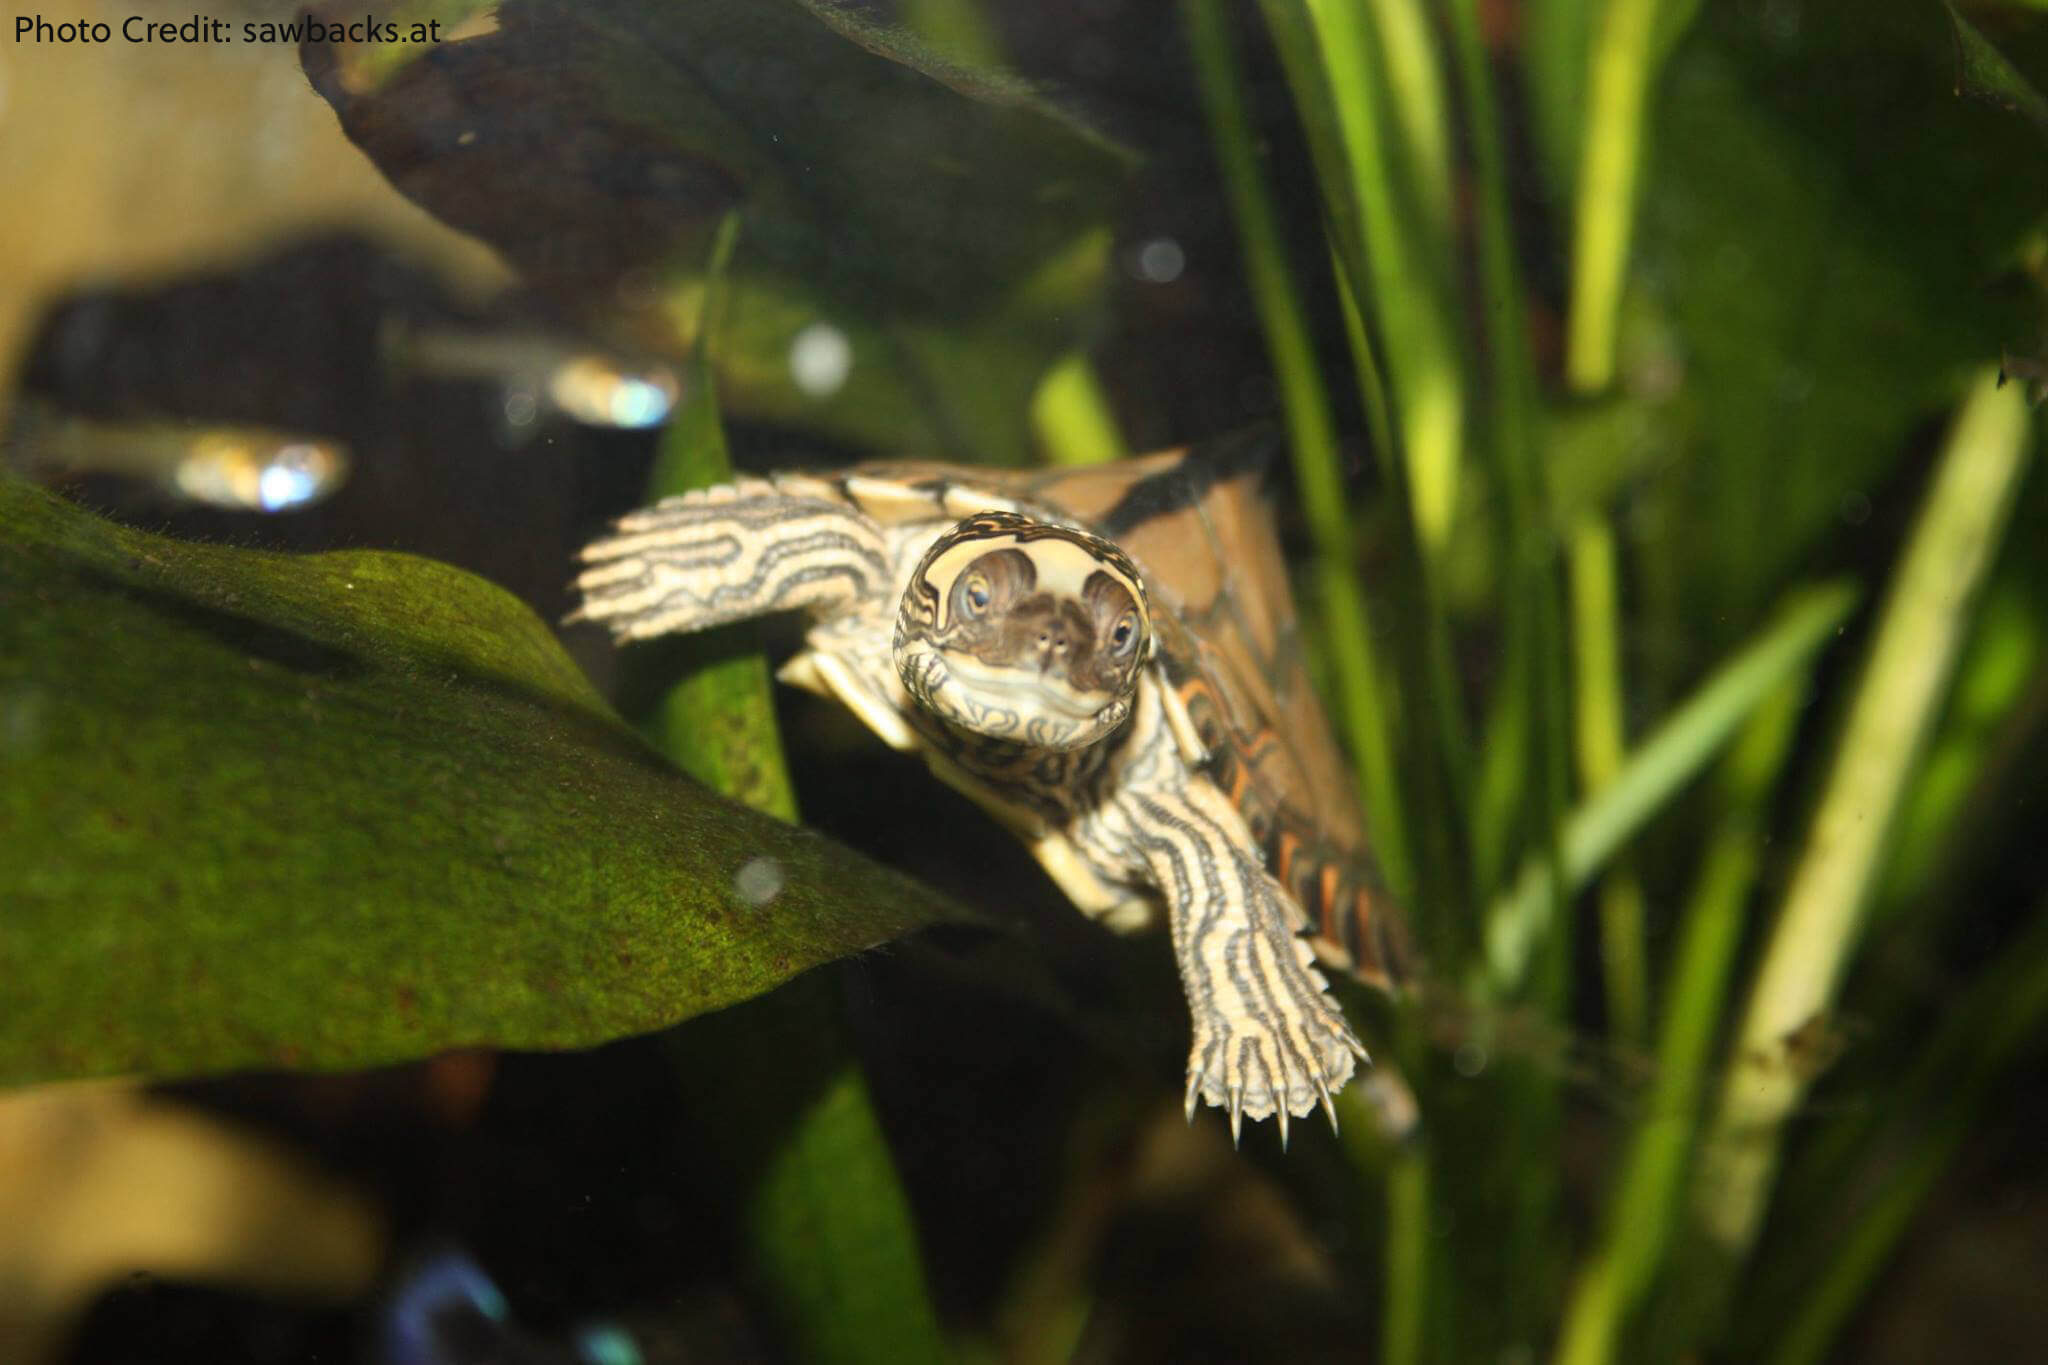 Graptemys gibbonsi (Pascagoula Map Turtle) - sawbacks.at